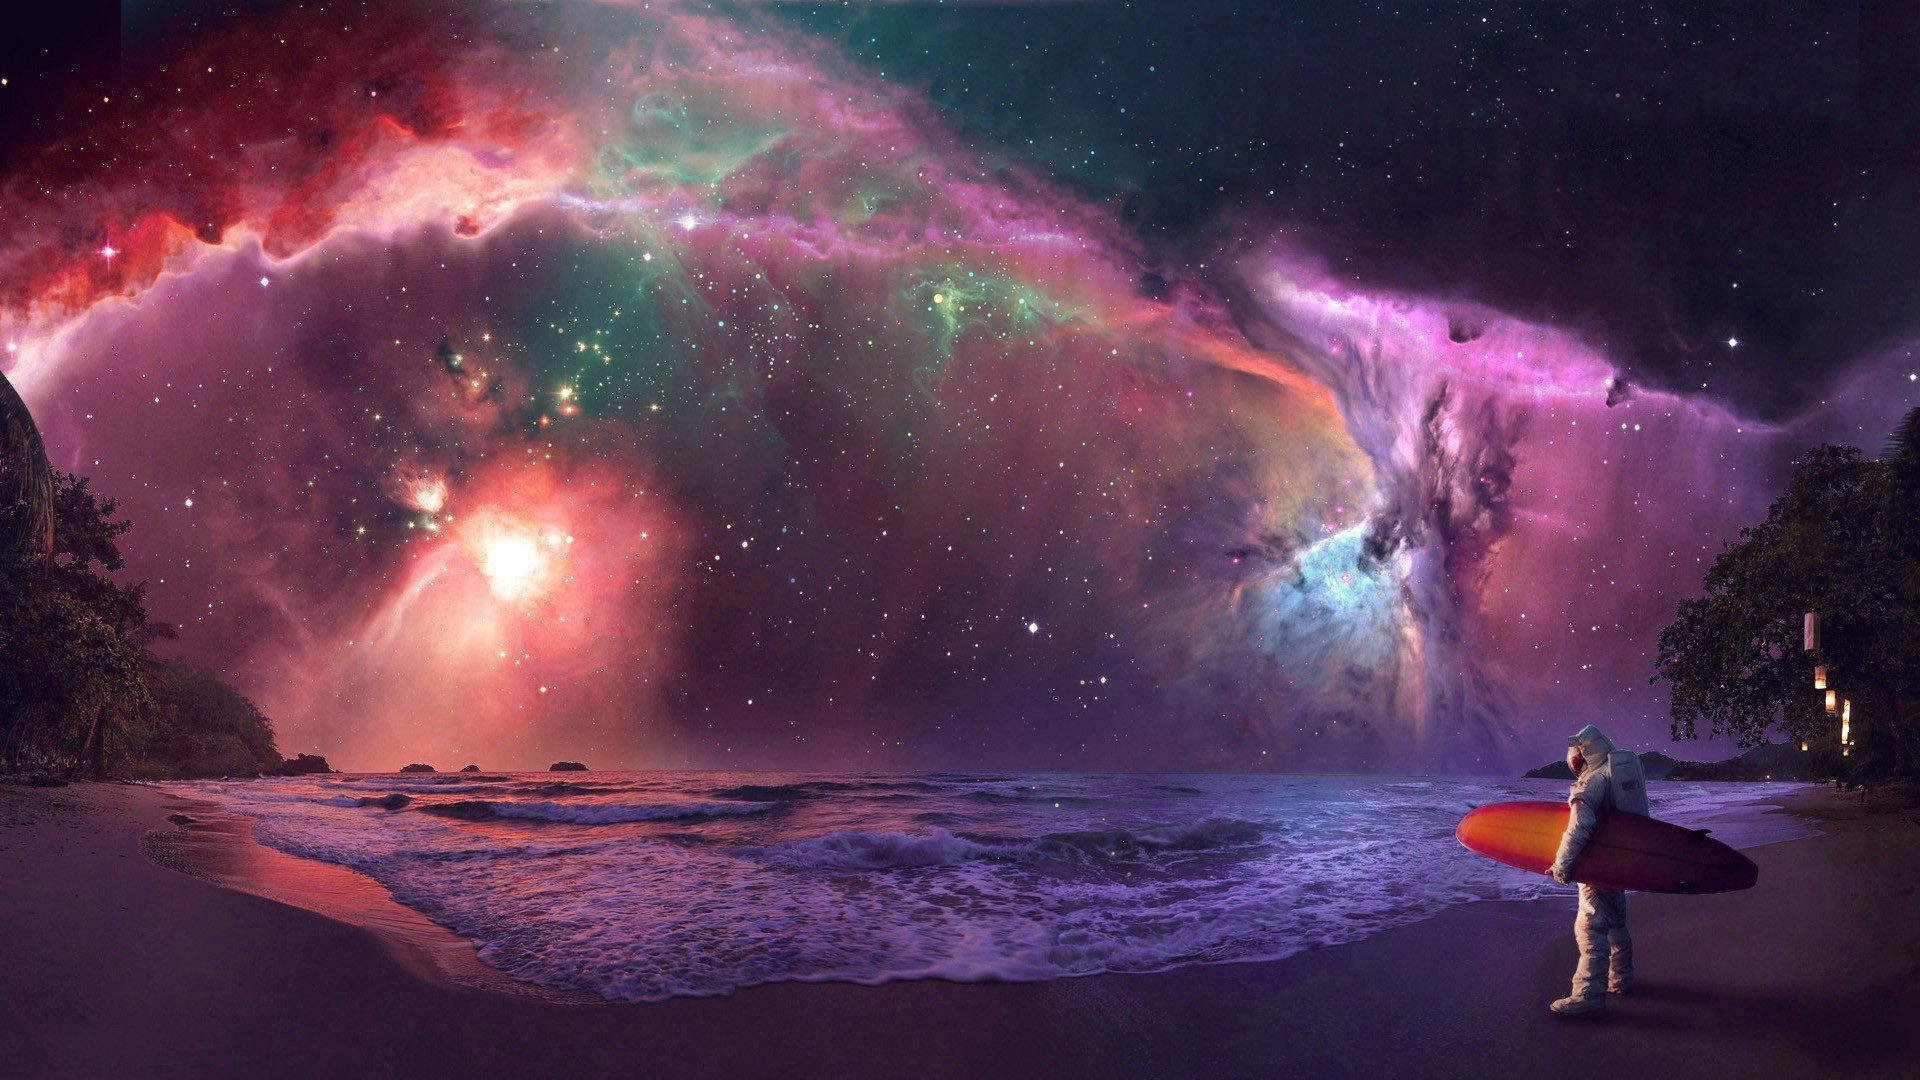 wallpapers trippy astronaut surfer - photo #1